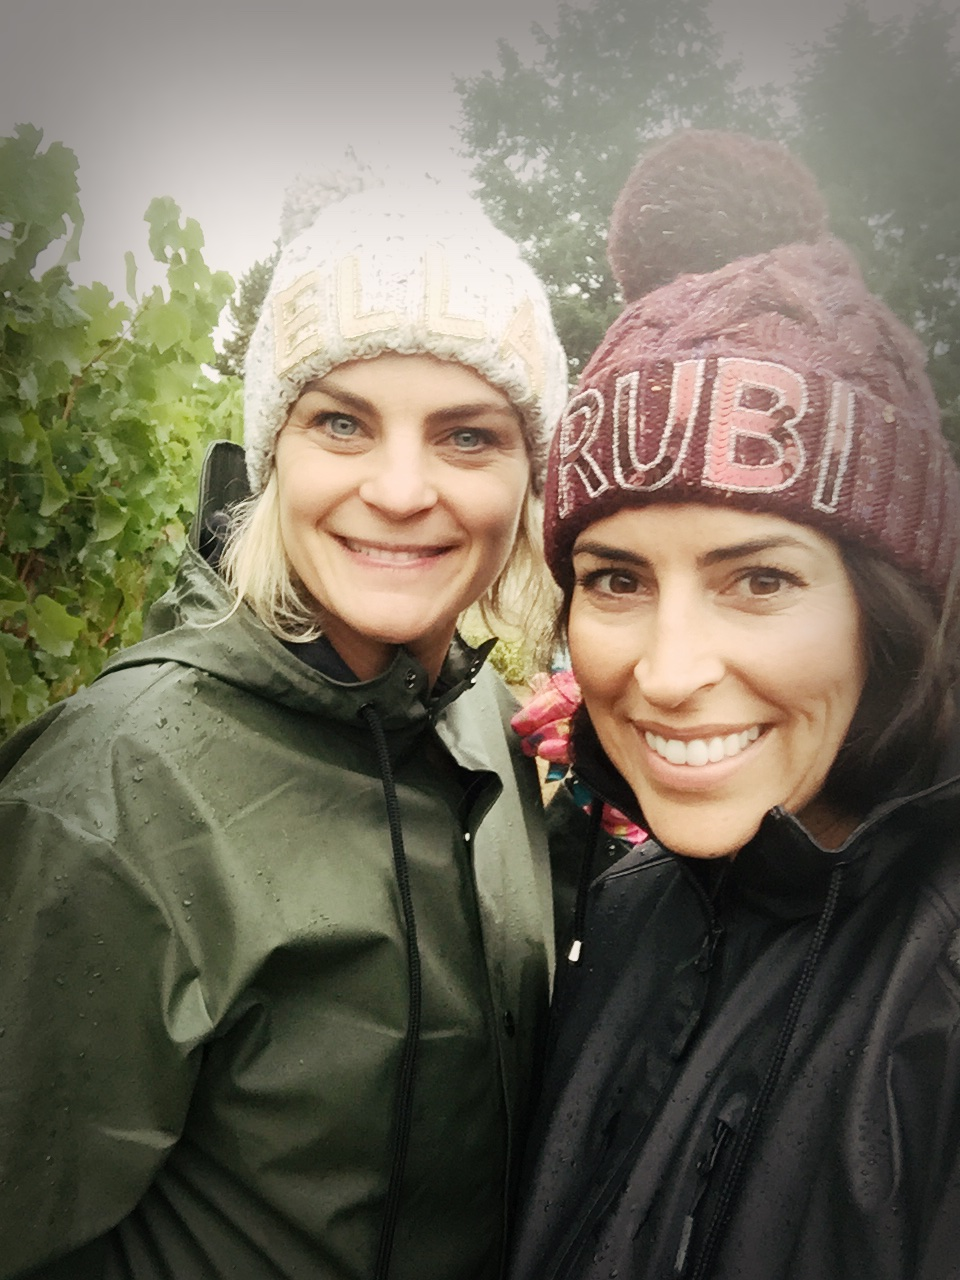 bright and early...in the rain...we pick grapes 🍇